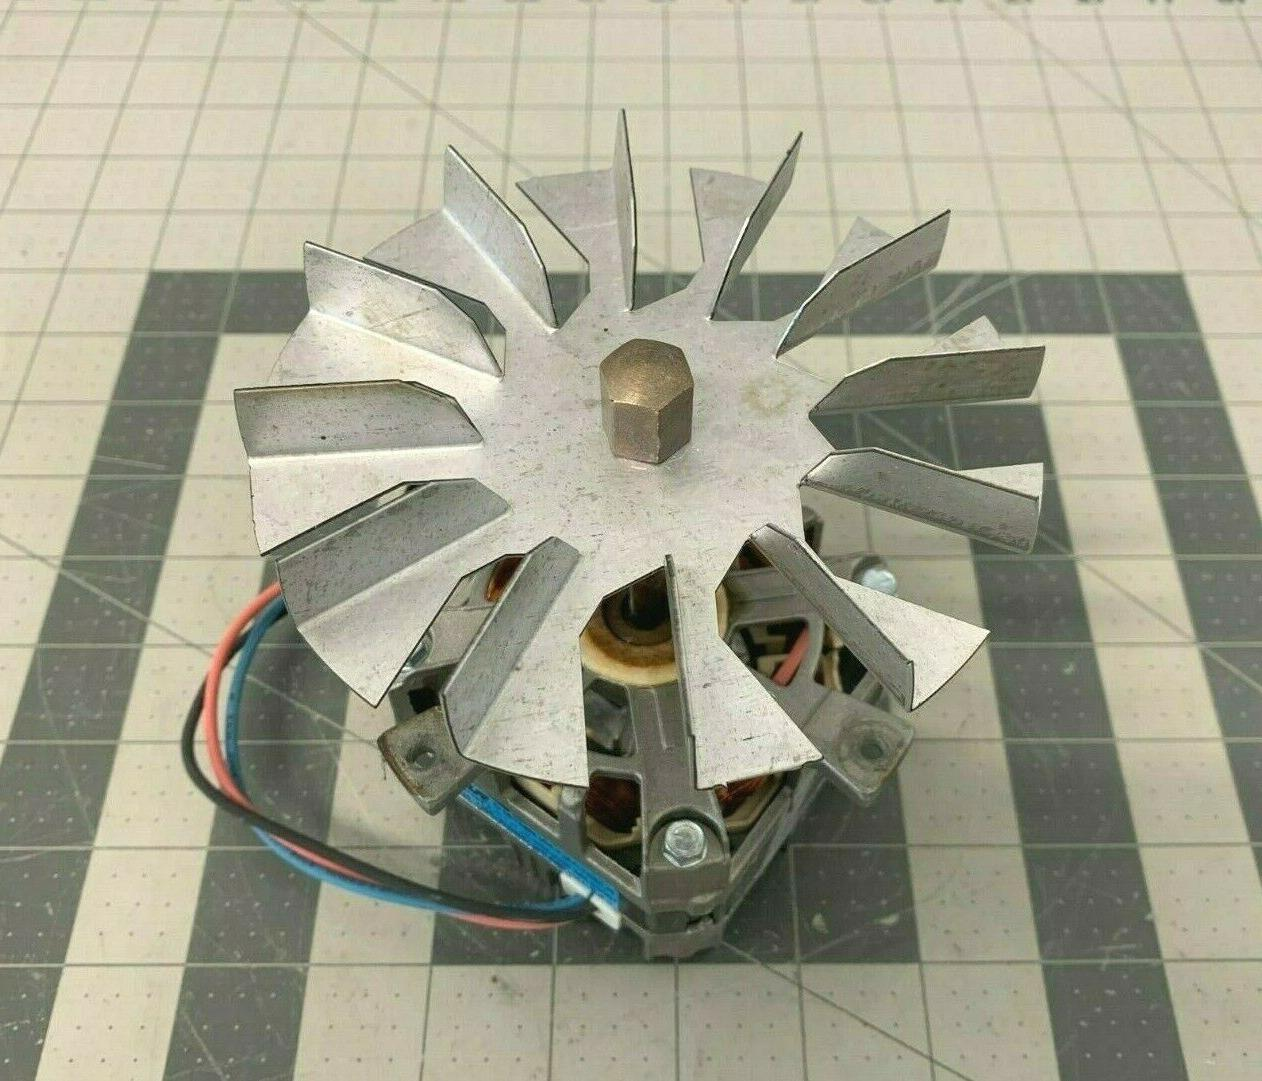 kenmore oven convection fan motor wb26t10013 164d4751p001